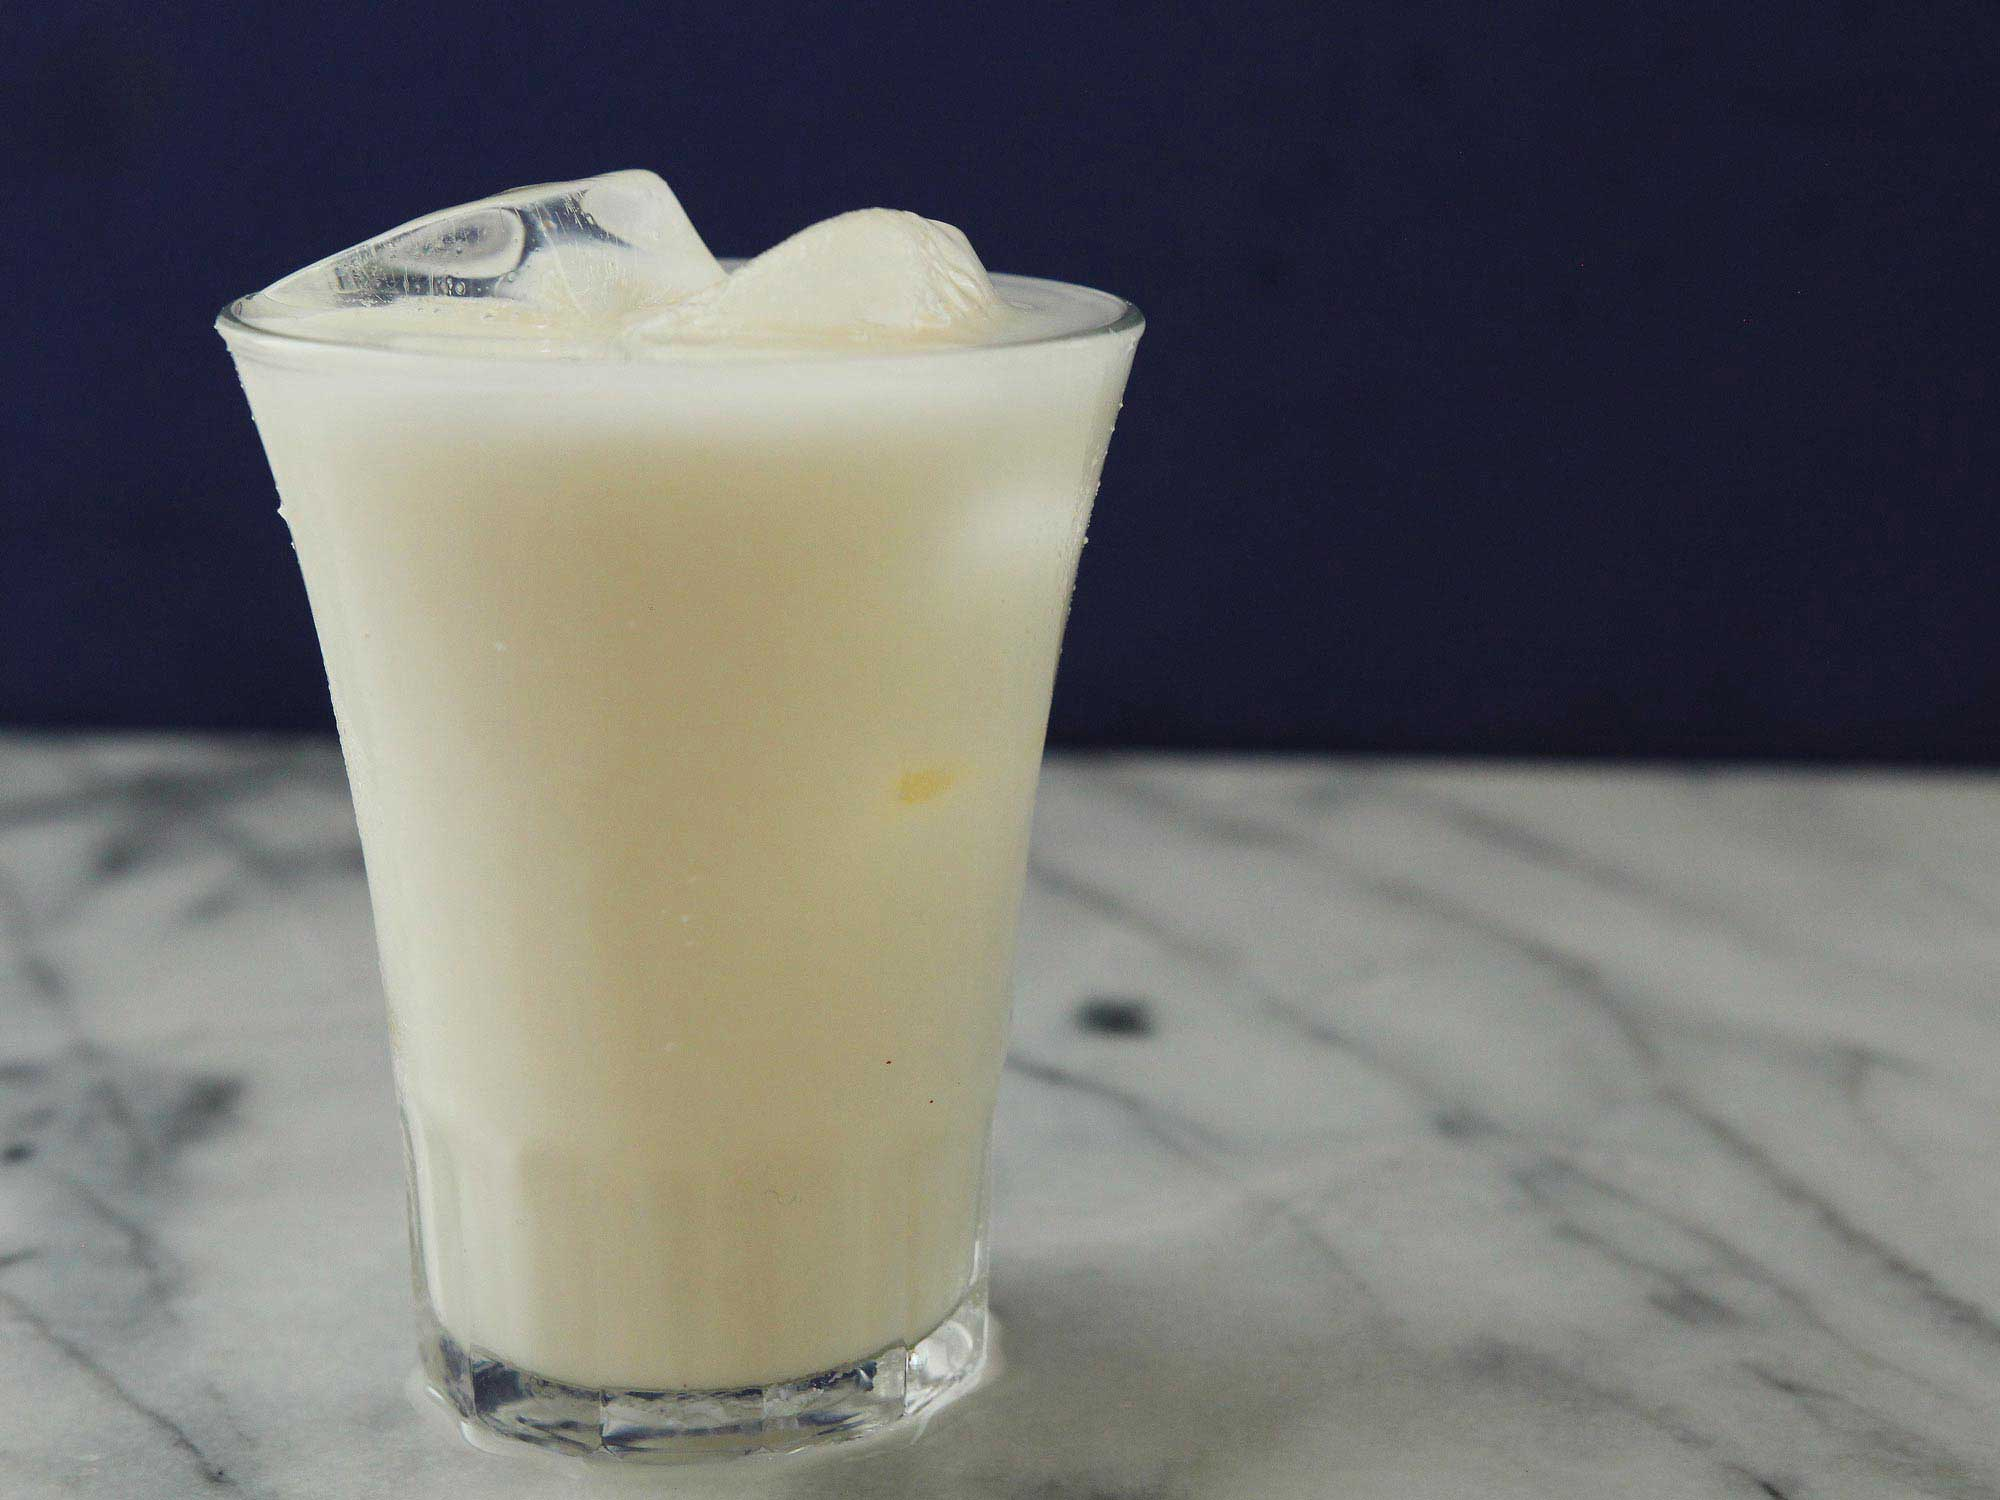 Orchata (Indian Almond and Rosewater Drink)